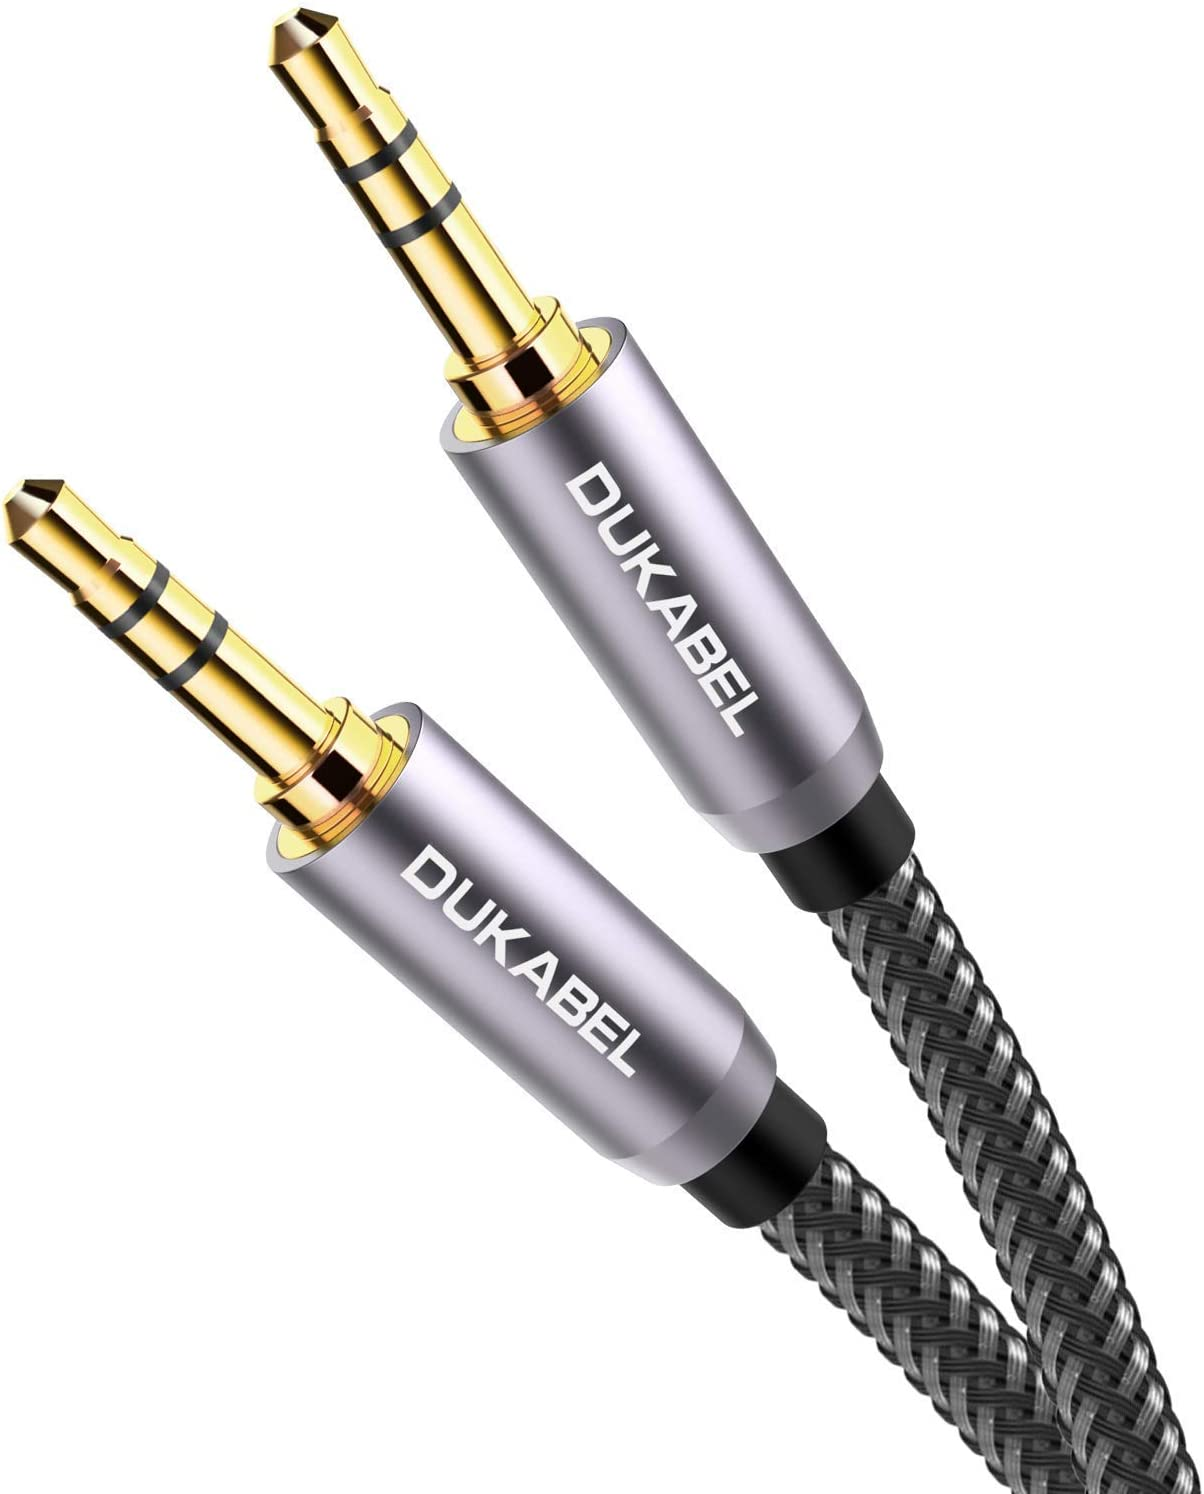 DuKabel Top Series Long Audio Cable 26 Feet (8 Meters) - Shielded Aux Cable Cord 3.5mm Male to Male Stereo Auxiliary Cable Cord/Crystal-Nylon Braided / 24K Gold Plated / 99.99% 4N OFC Conductor